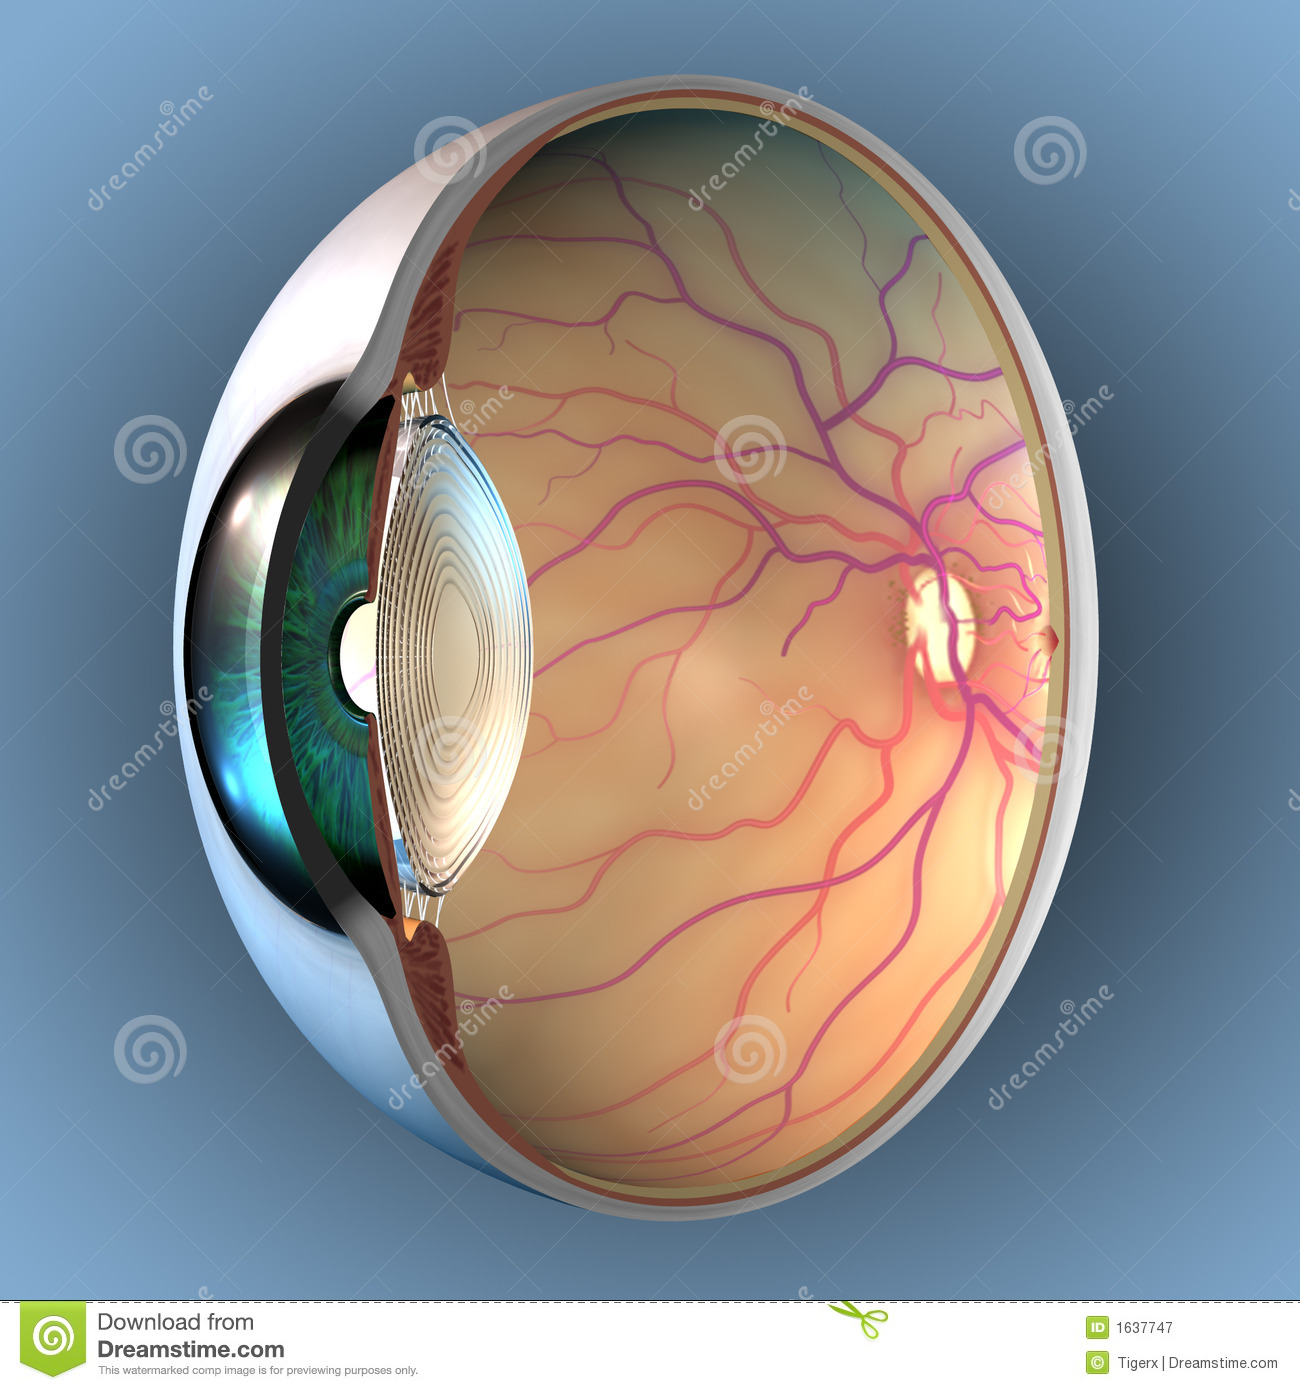 Anatomy of Eye stock illustration. Illustration of sagittal - 1637747